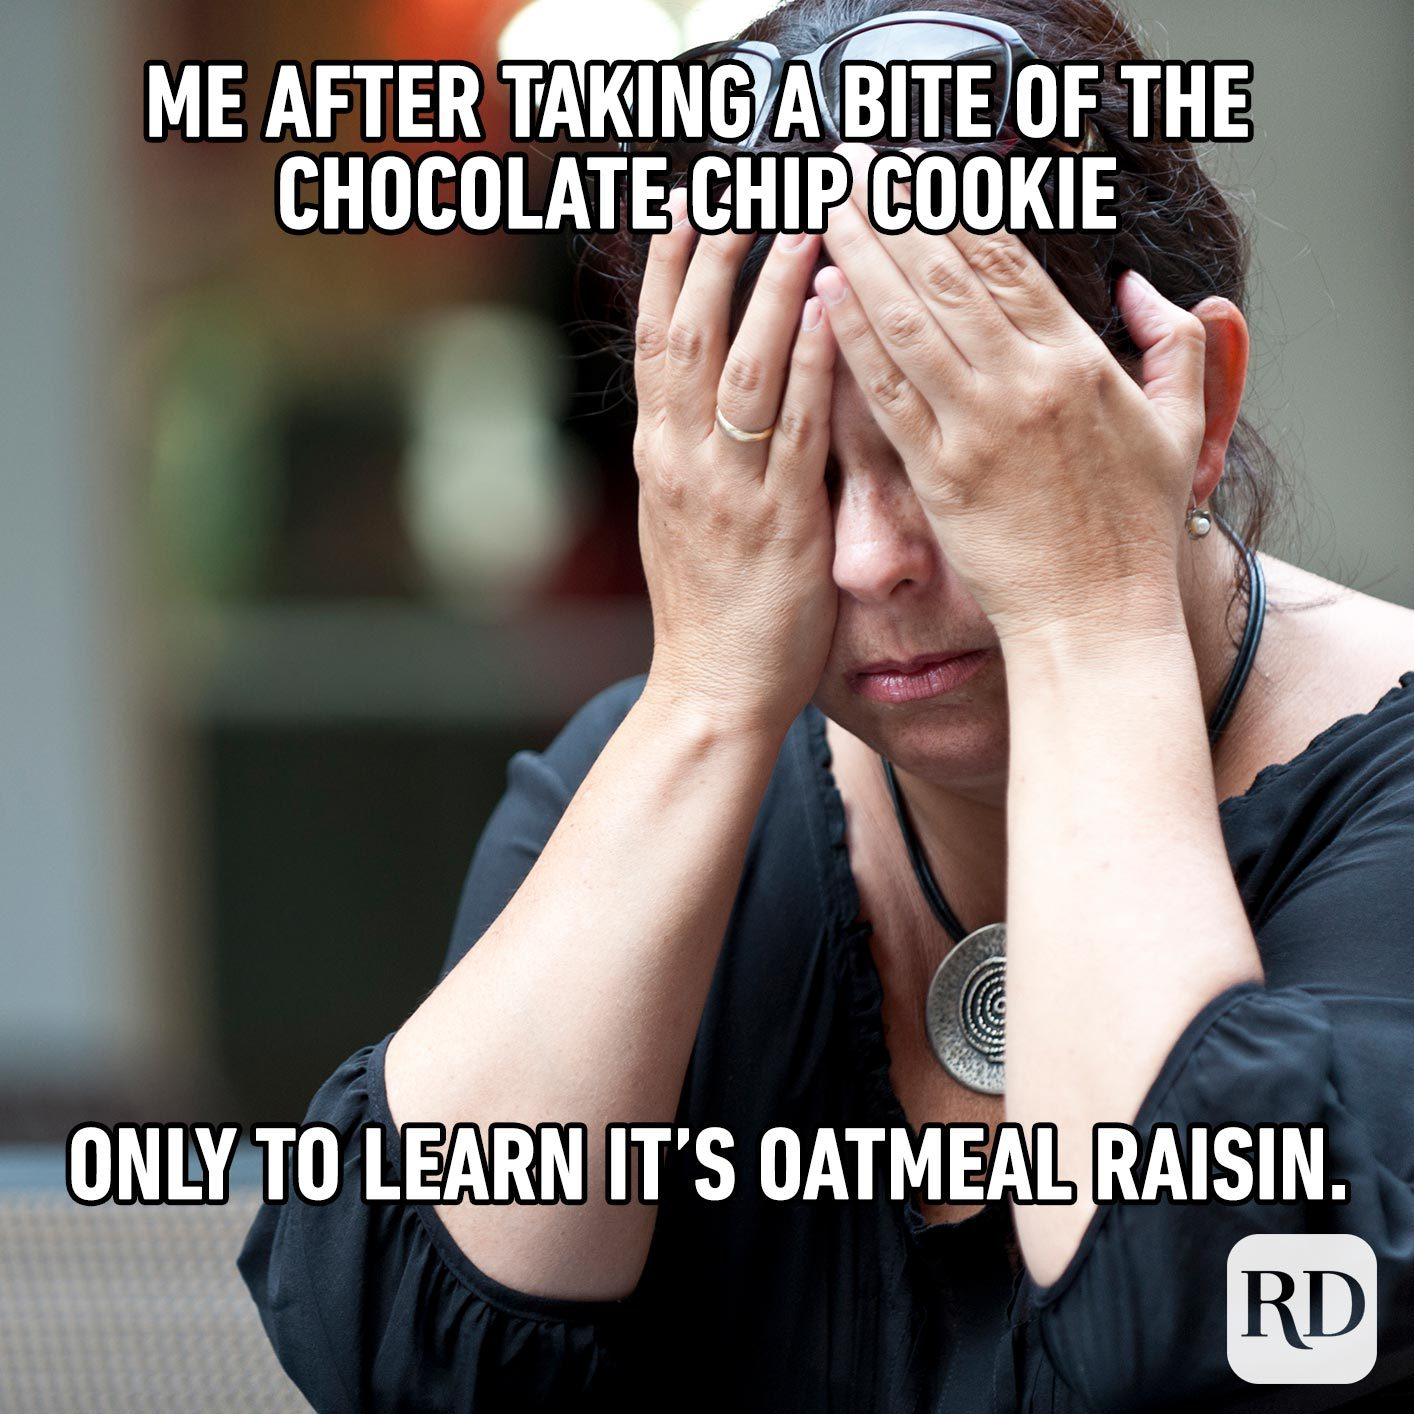 Woman rubbing her eyes with hands. Meme text: Me after taking a bite of the chocolate chip cookie only to learn it's oatmeal raisin.